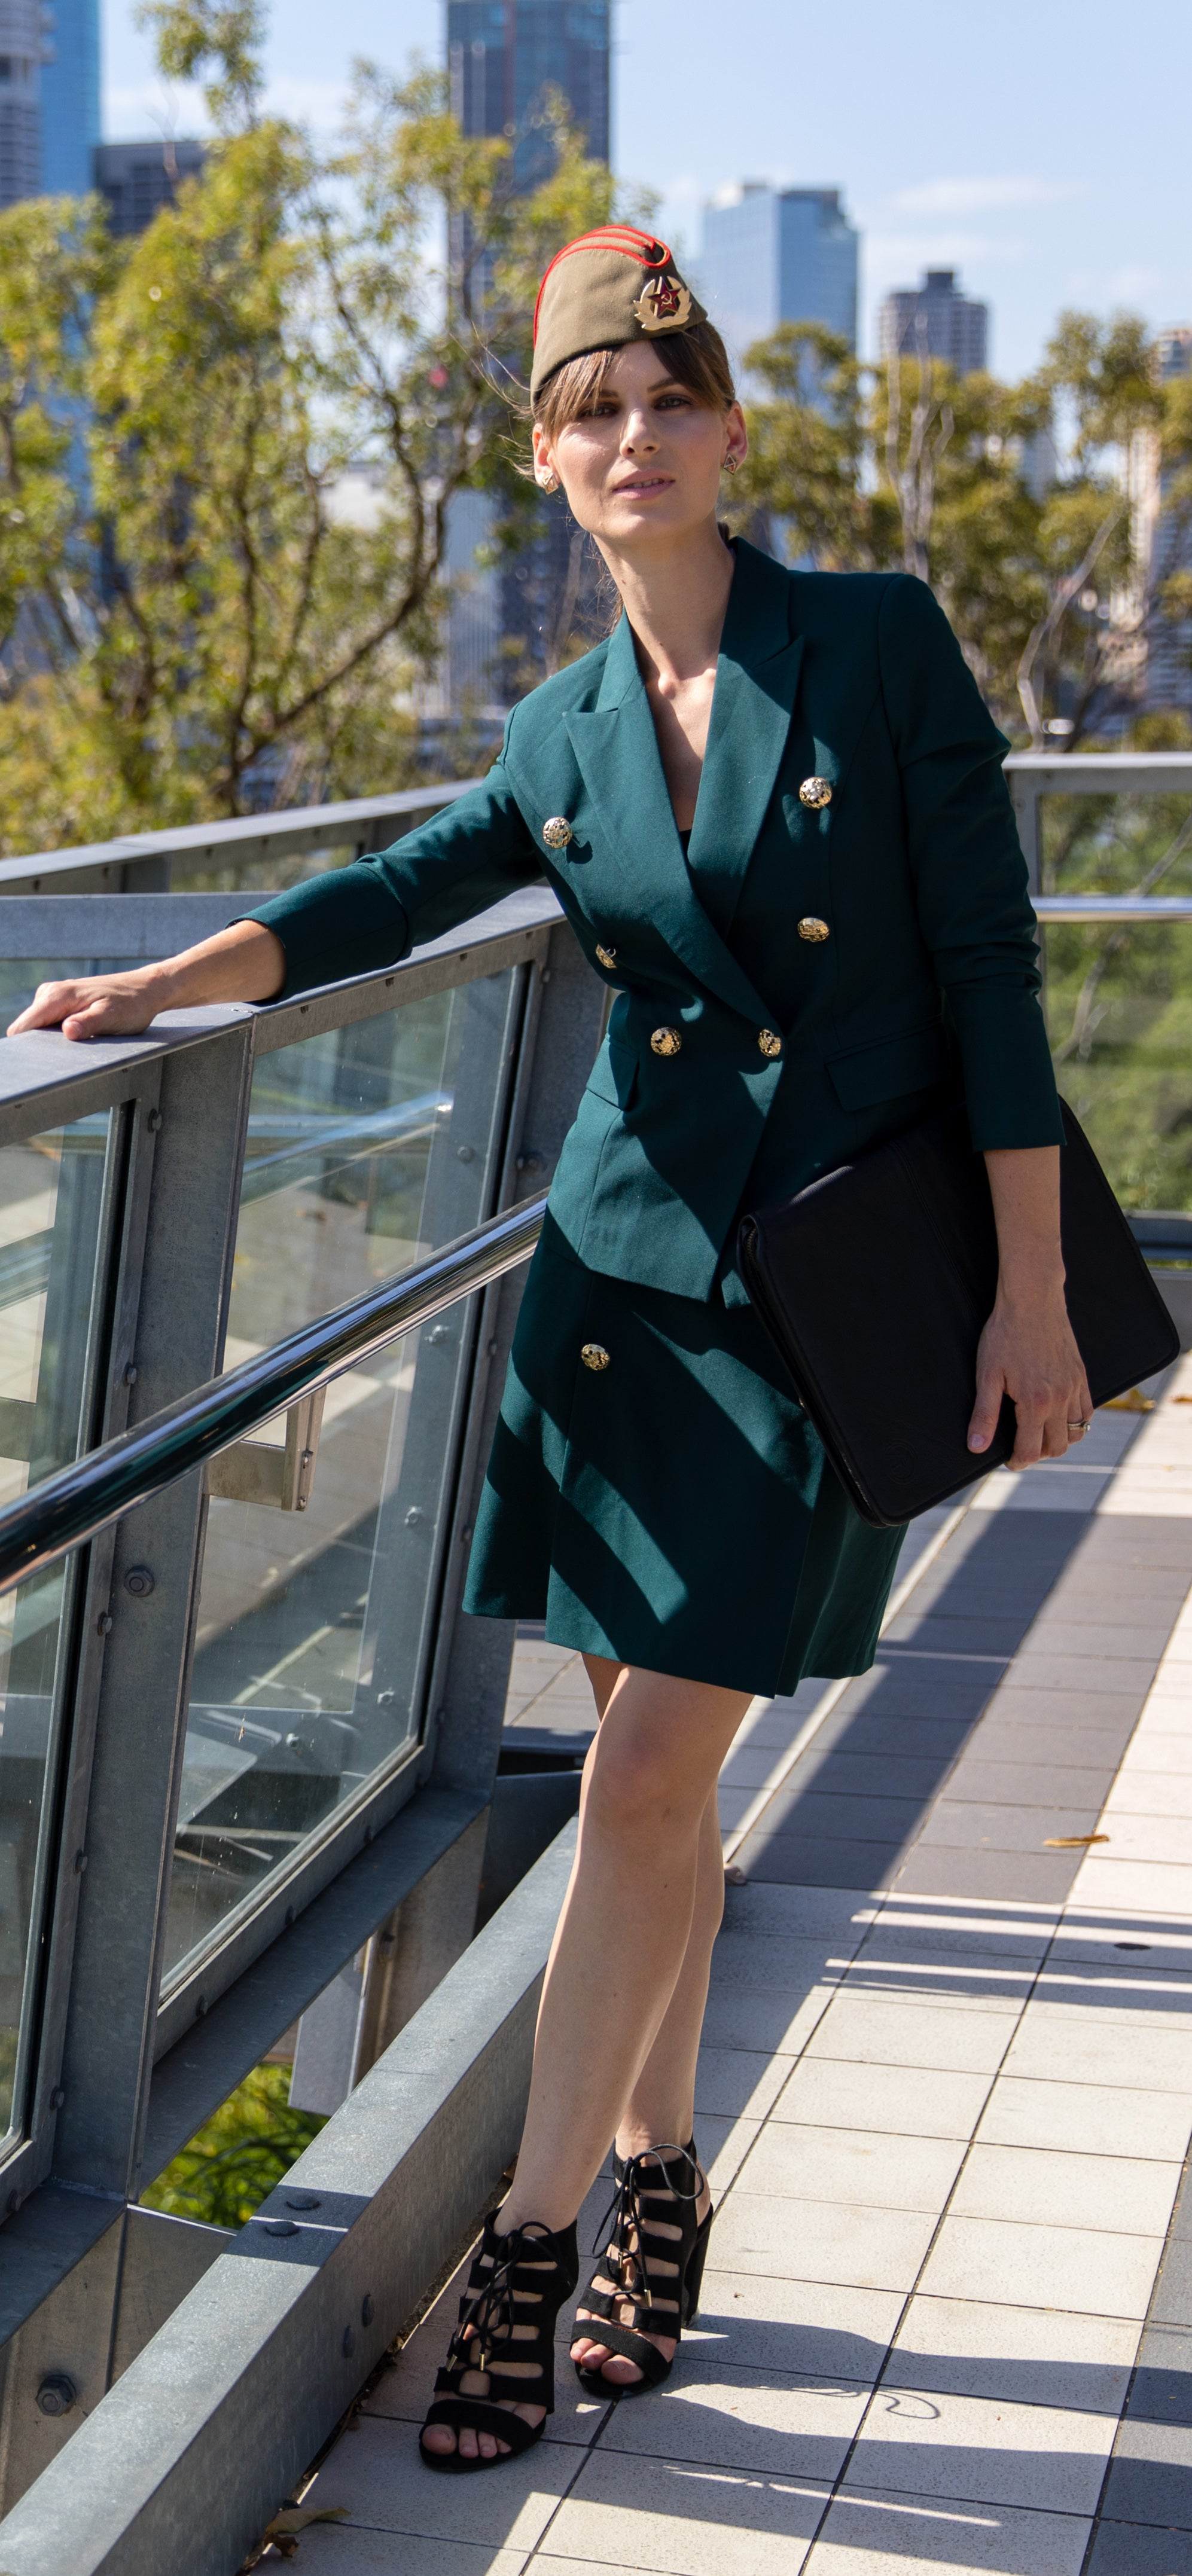 The Emerald Battalion Skirt Suit